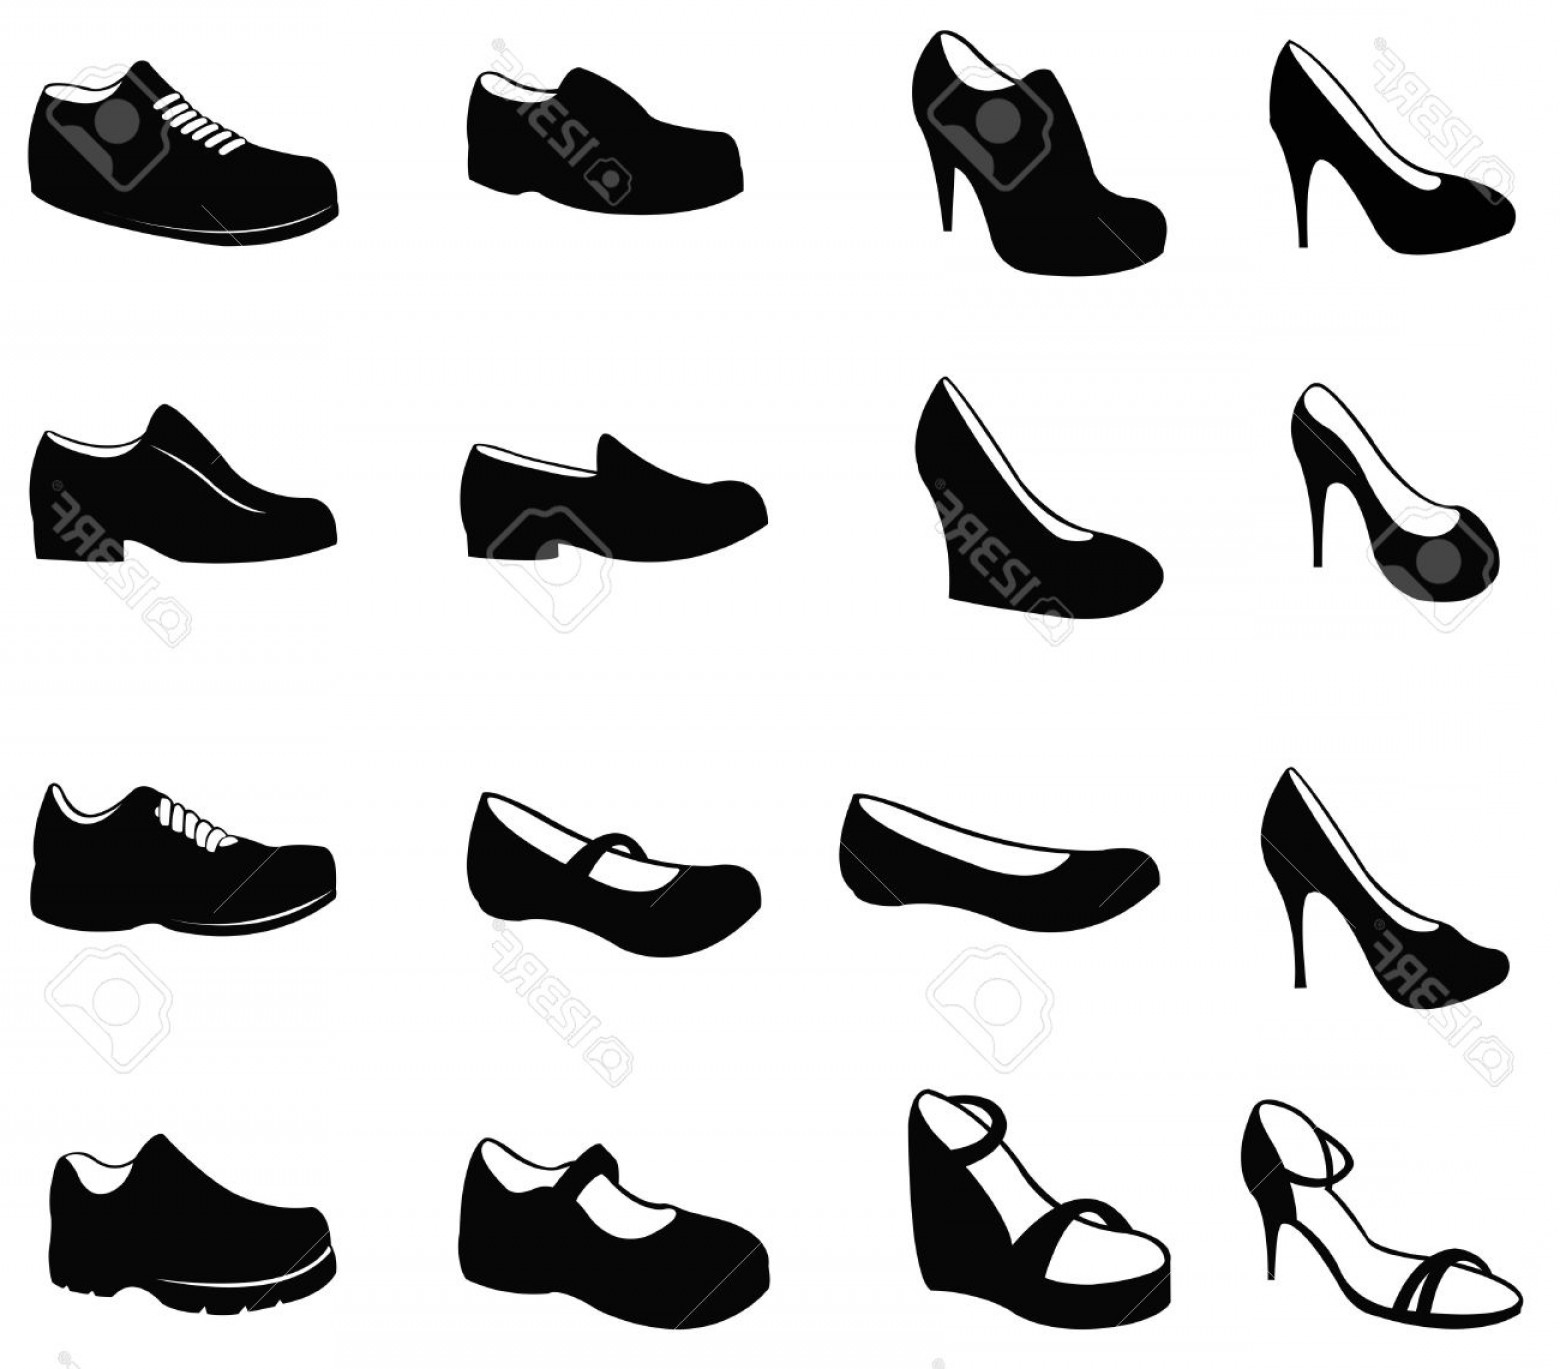 Sneaker Silhouette Vector: Photoset Of Silhouette Shoes Icon Create By Vector